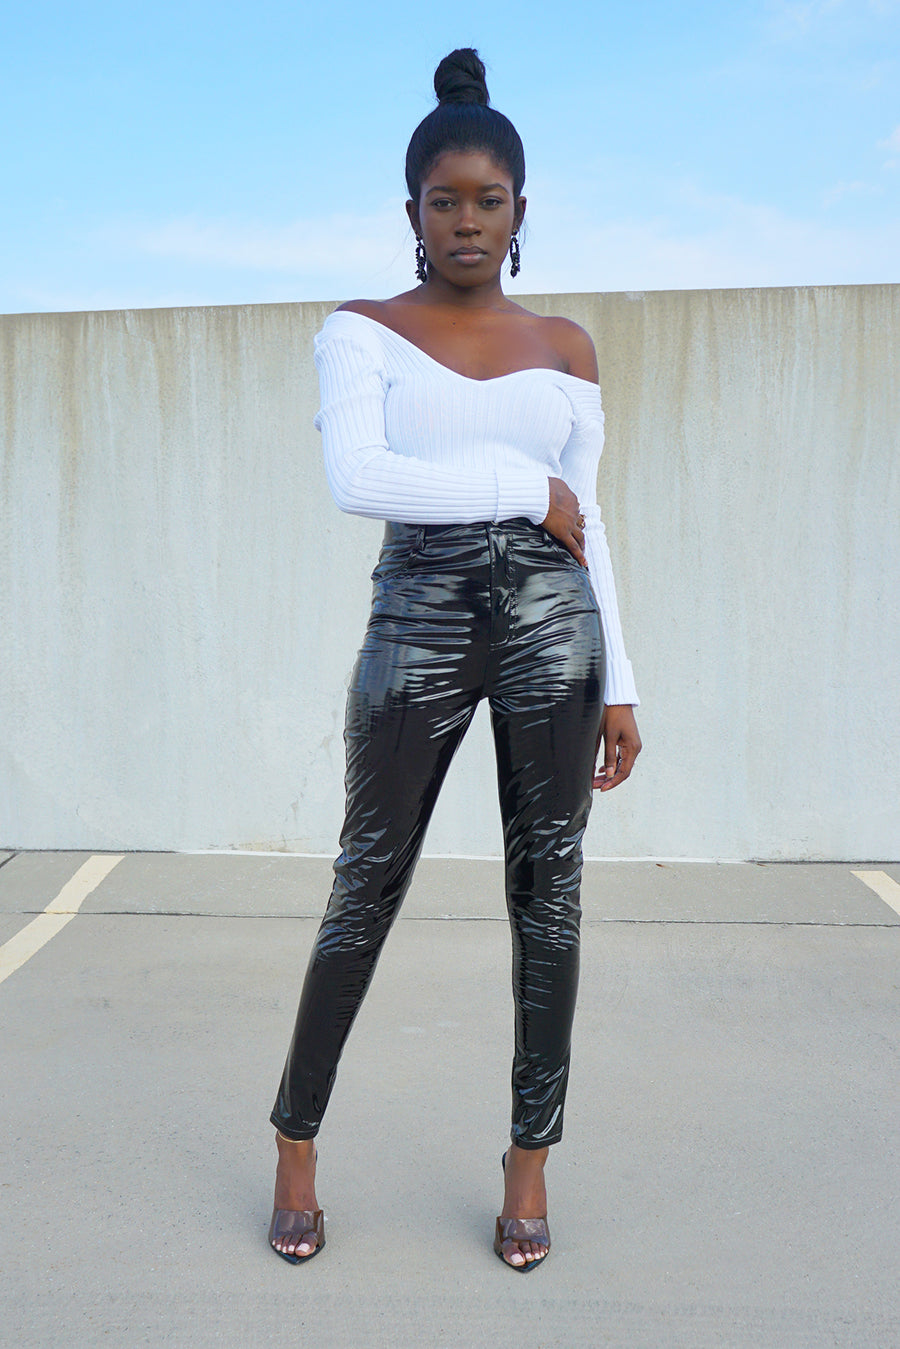 Patent Vinyl Pants - FINAL SALEClothes, BottomsGreige - Greige